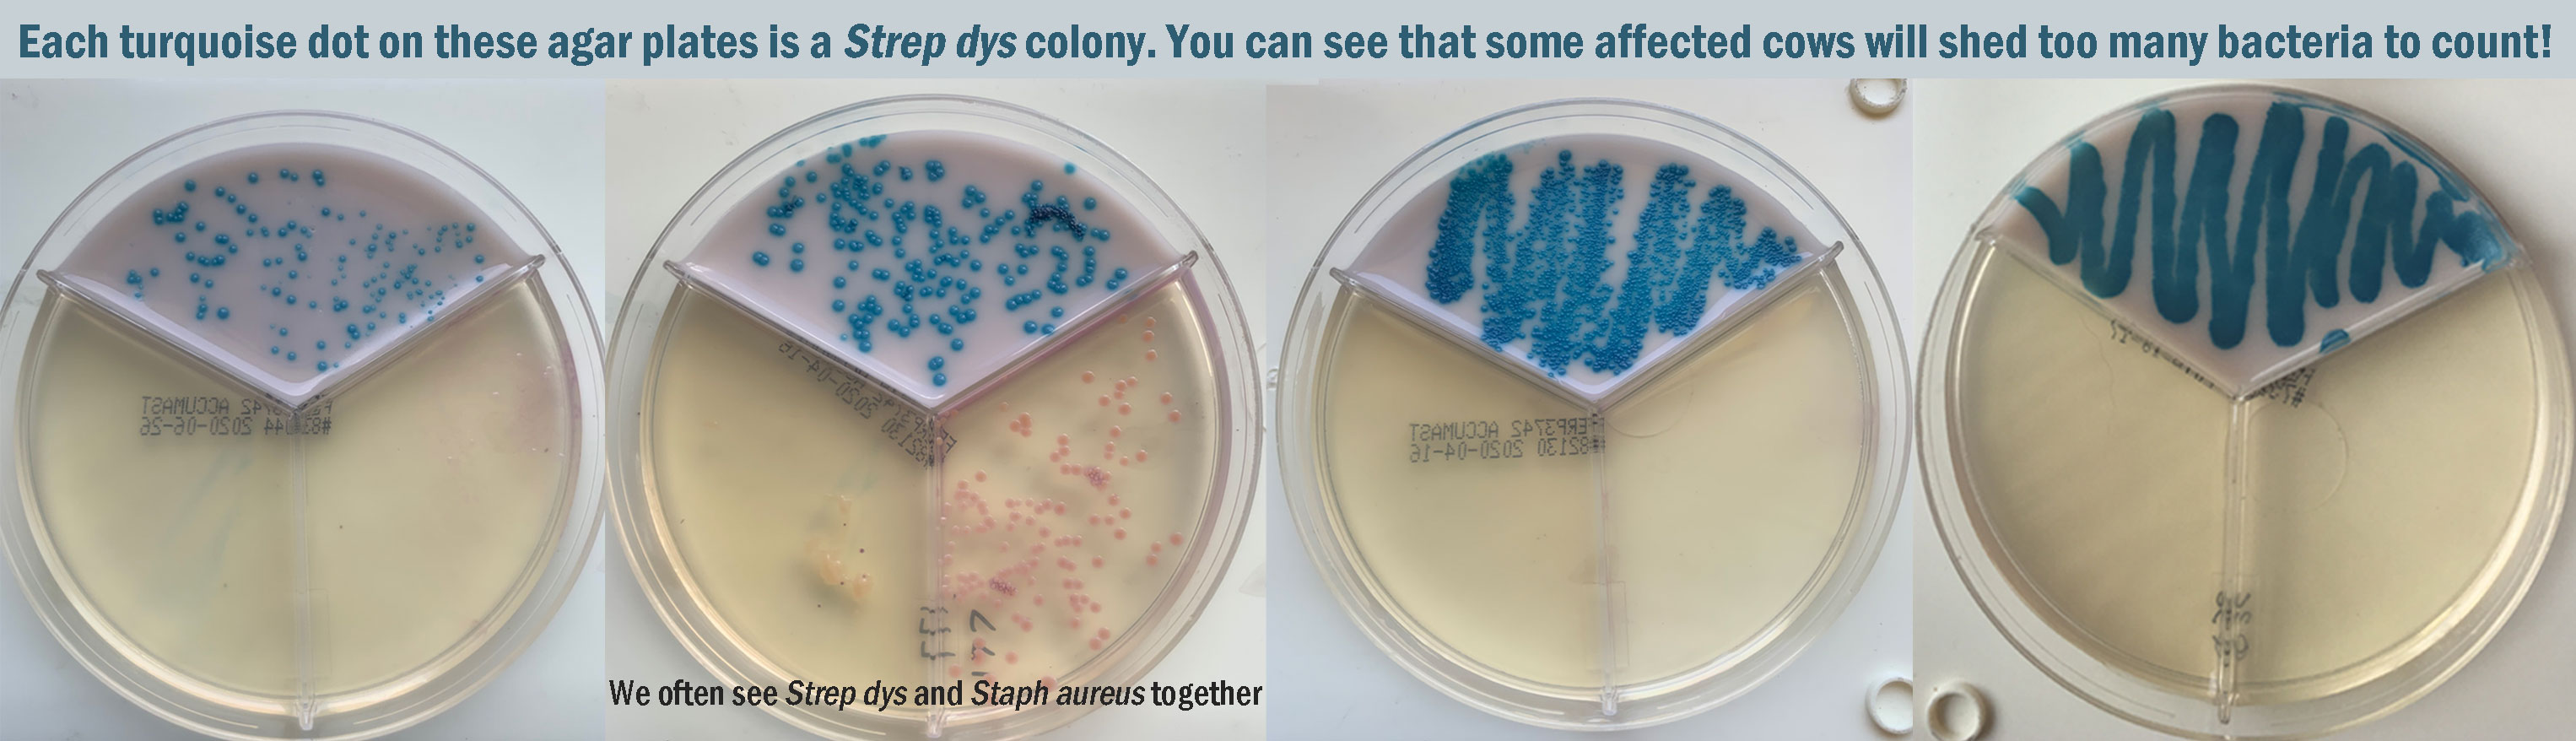 agar plates showing turquoise strep dys bacteria